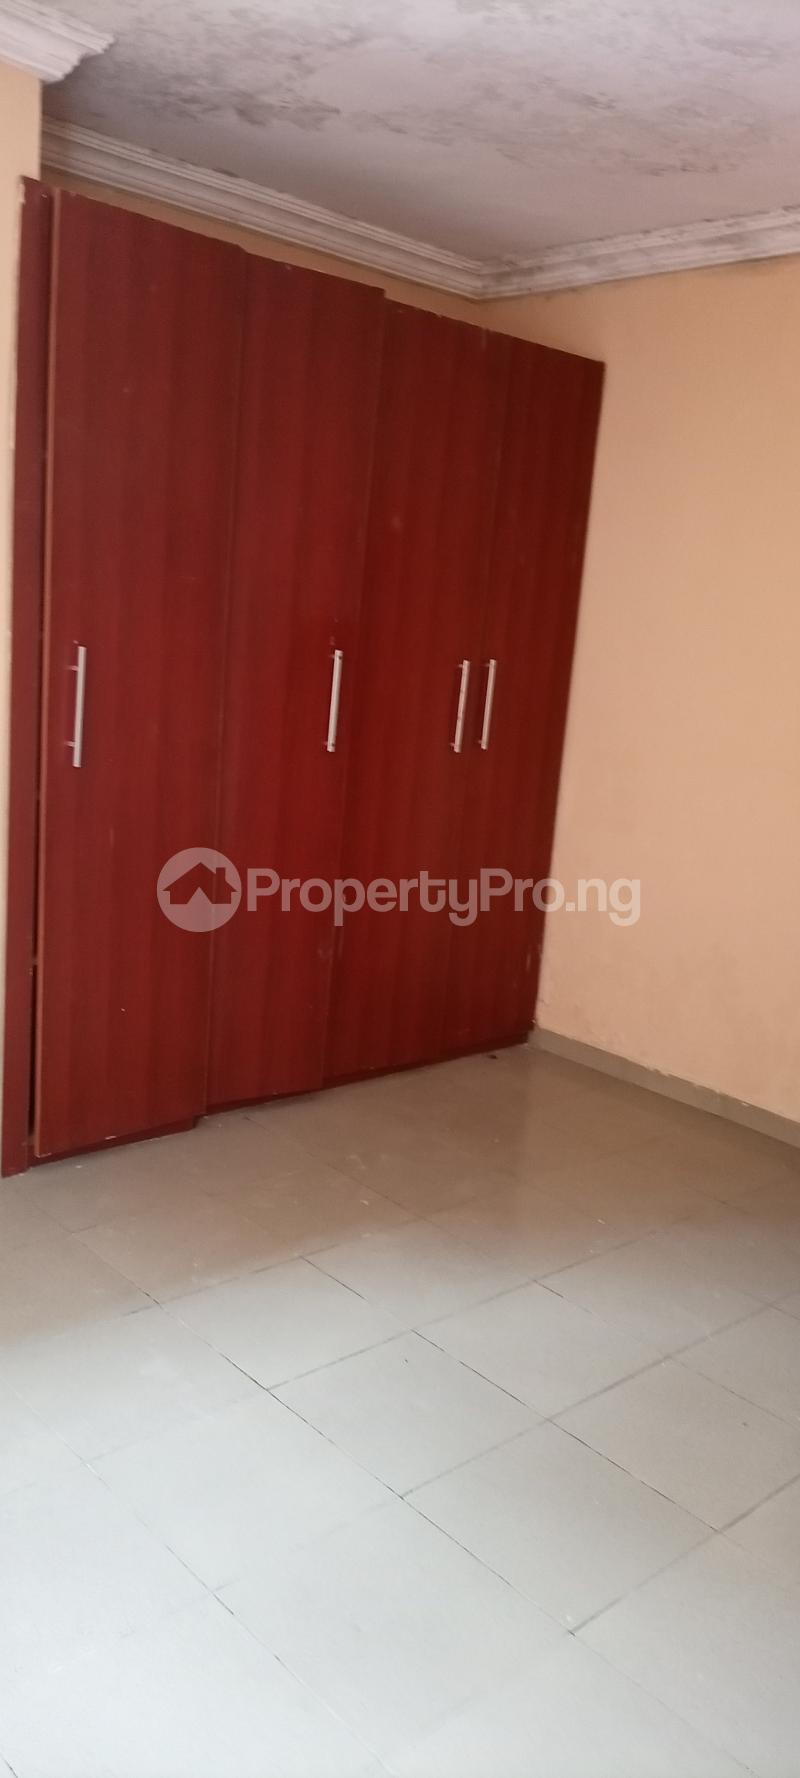 3 bedroom Flat / Apartment for rent Ajao Estate Isolo. Lagos Mainland Isolo Lagos - 2